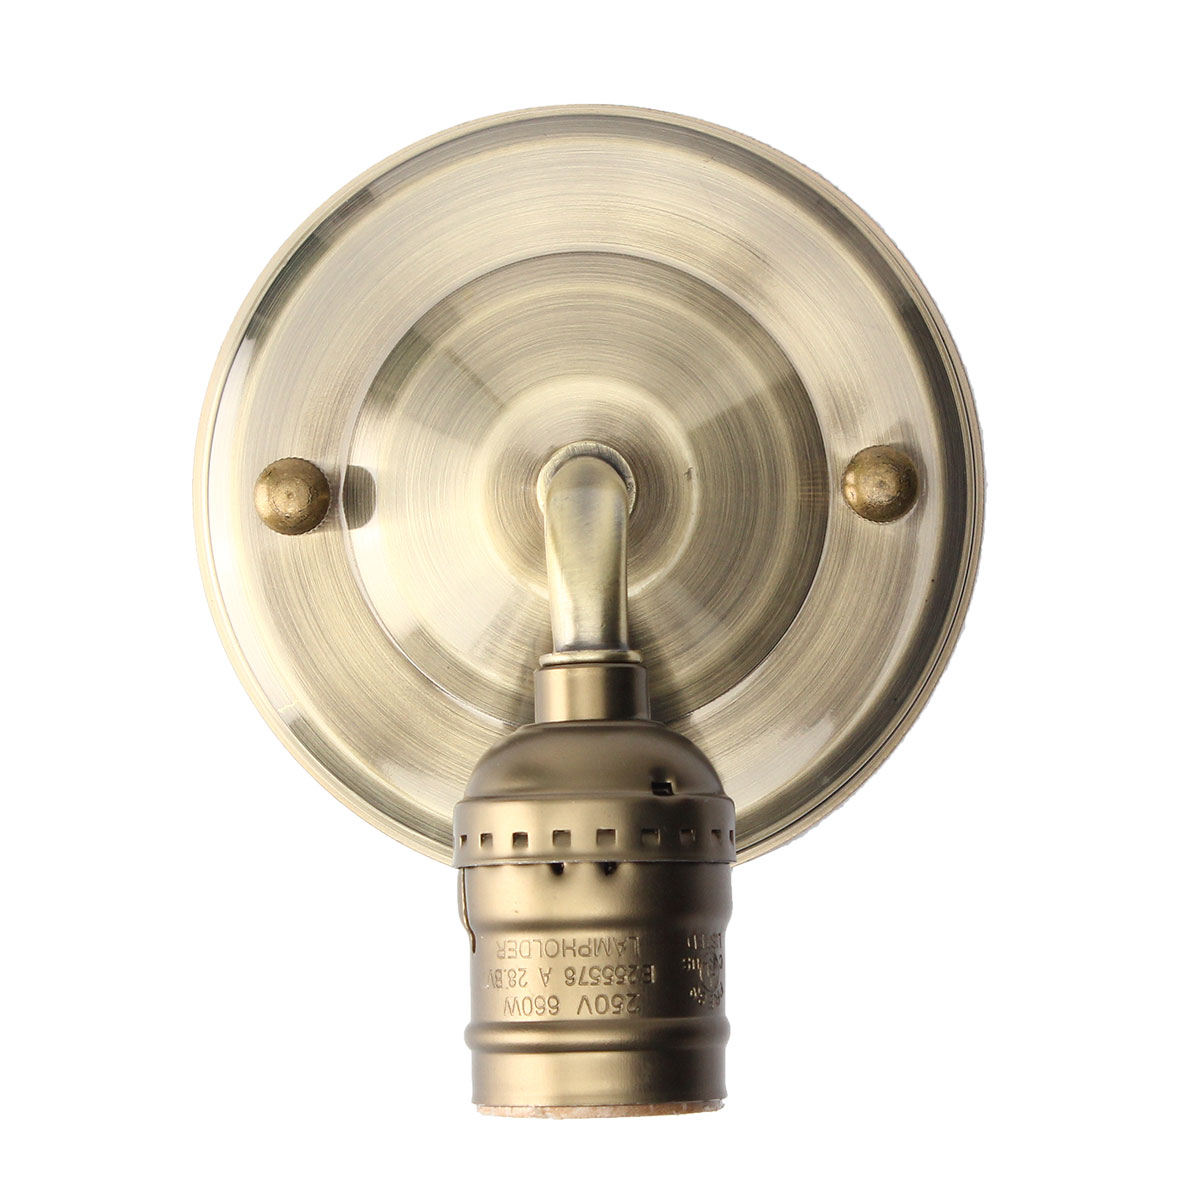 Wall Sconce With Socket Switch : E27 Antique Vintage Wall Light Simple Design Sconce Lamp Bulb Socket Holder Fixture Alex NLD